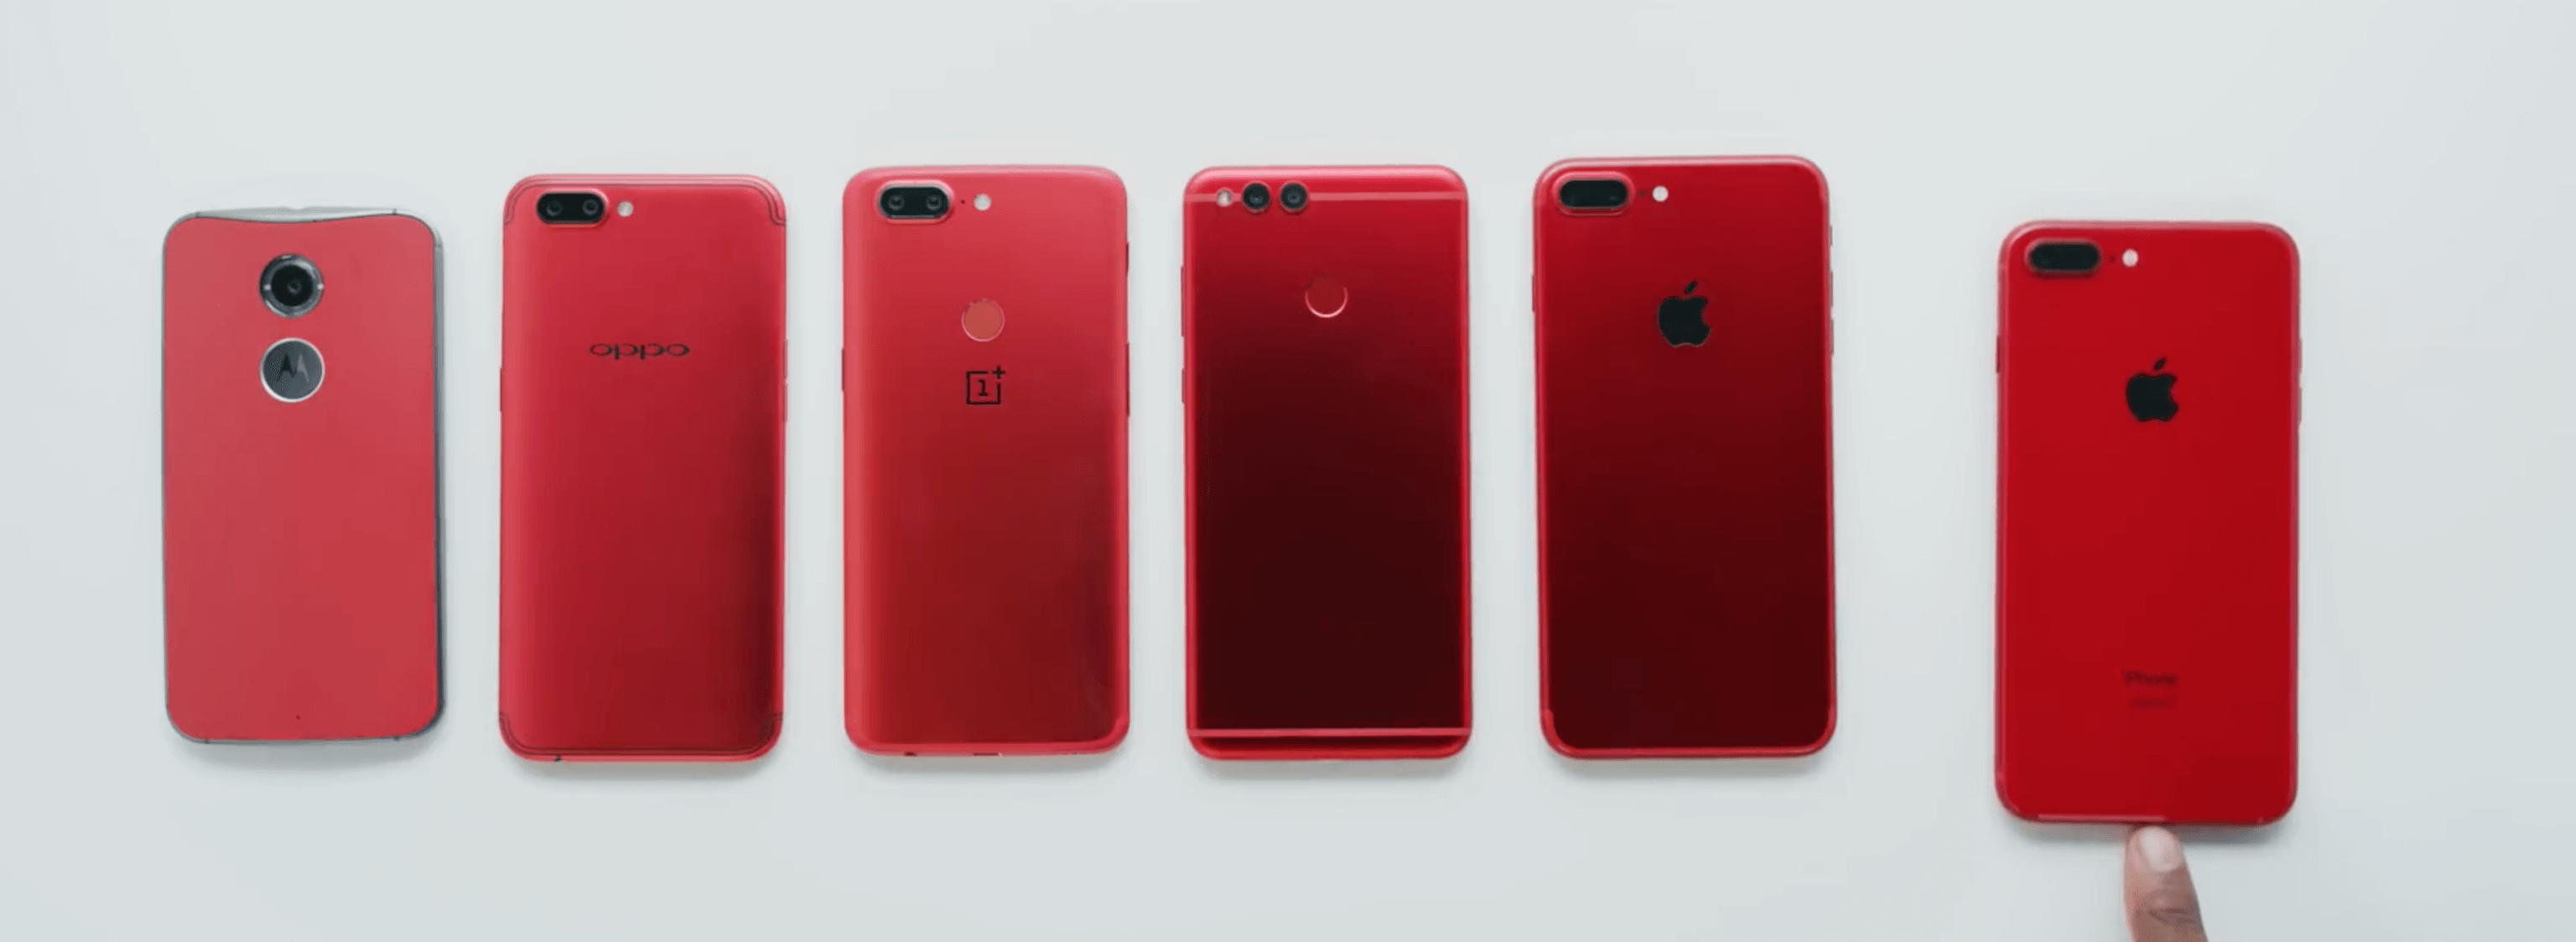 iphone 8 product red unboxing interessanter. Black Bedroom Furniture Sets. Home Design Ideas